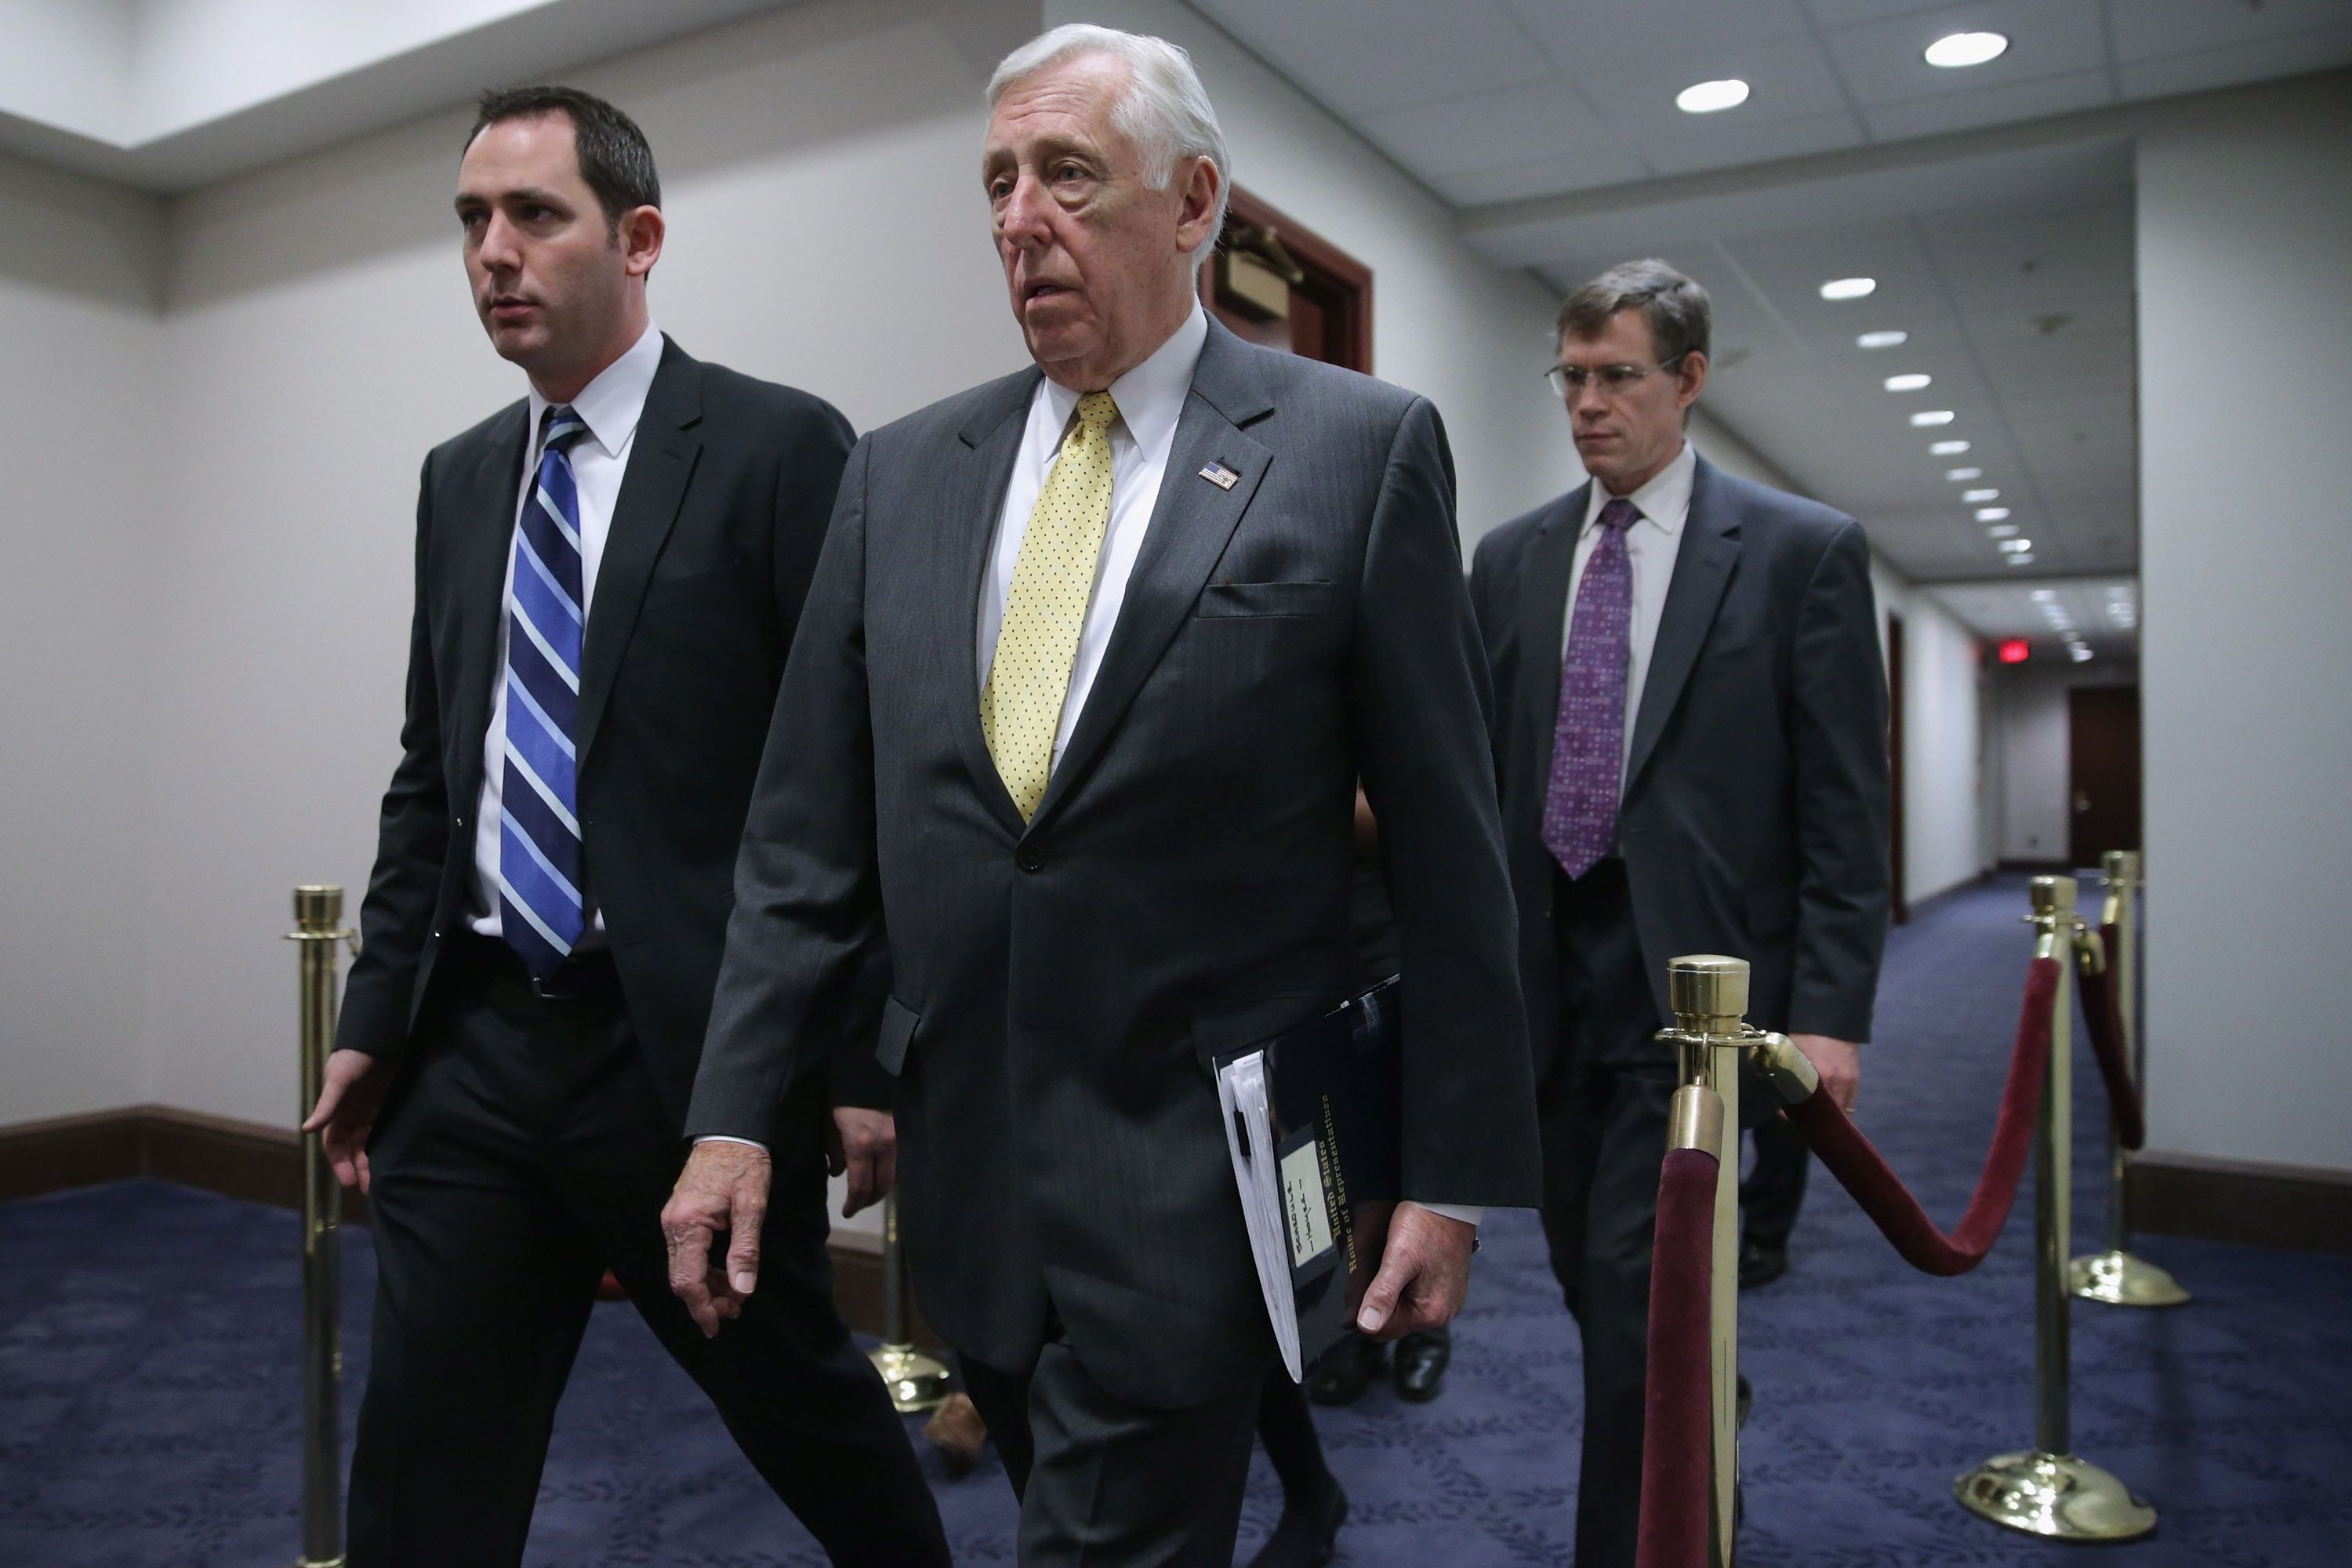 Steny Hoyer will lead group of 21 Democrats on tour to Israel. Another similar tour may be scheduled for 20 Republican Congress members.